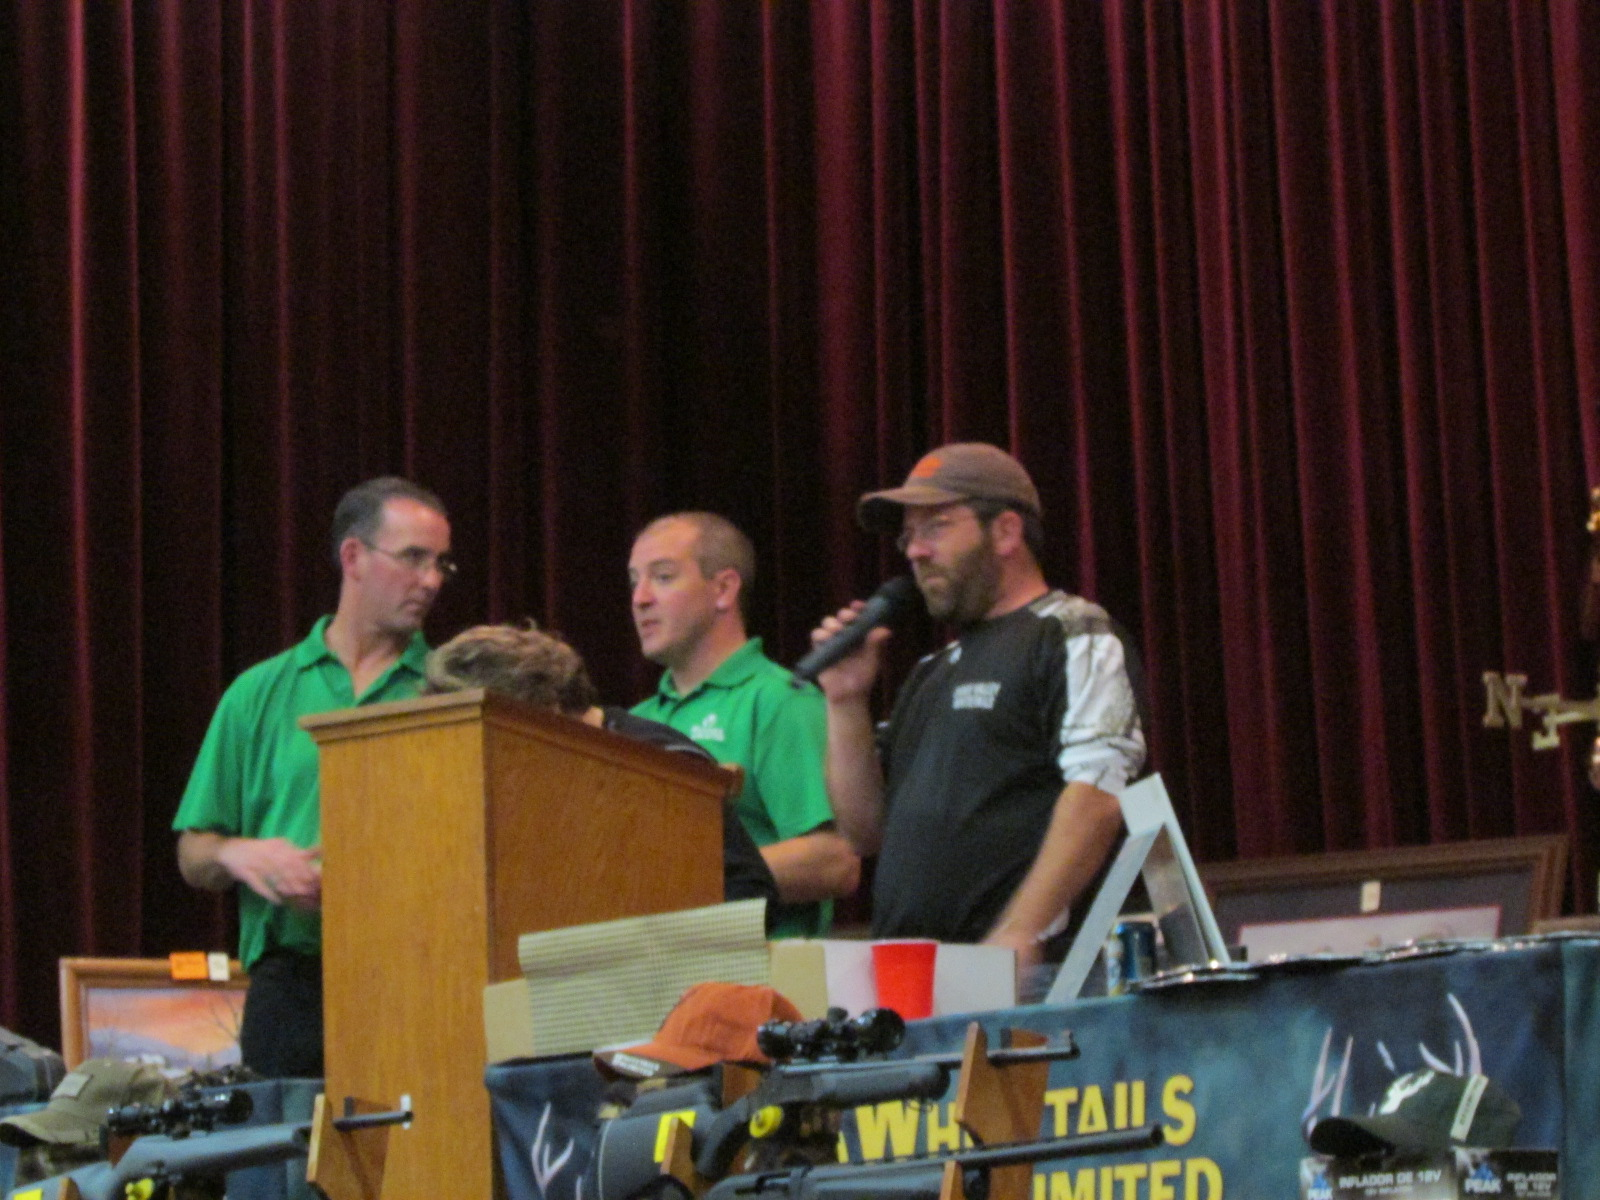 Serving as hosts for the 2013 Sioux Valley Whitetails Banquet were from left Whitetails Unlimited Field Director Tim Powers, Assistant Eric Yarbrow, and local chapter President Craig Handke.